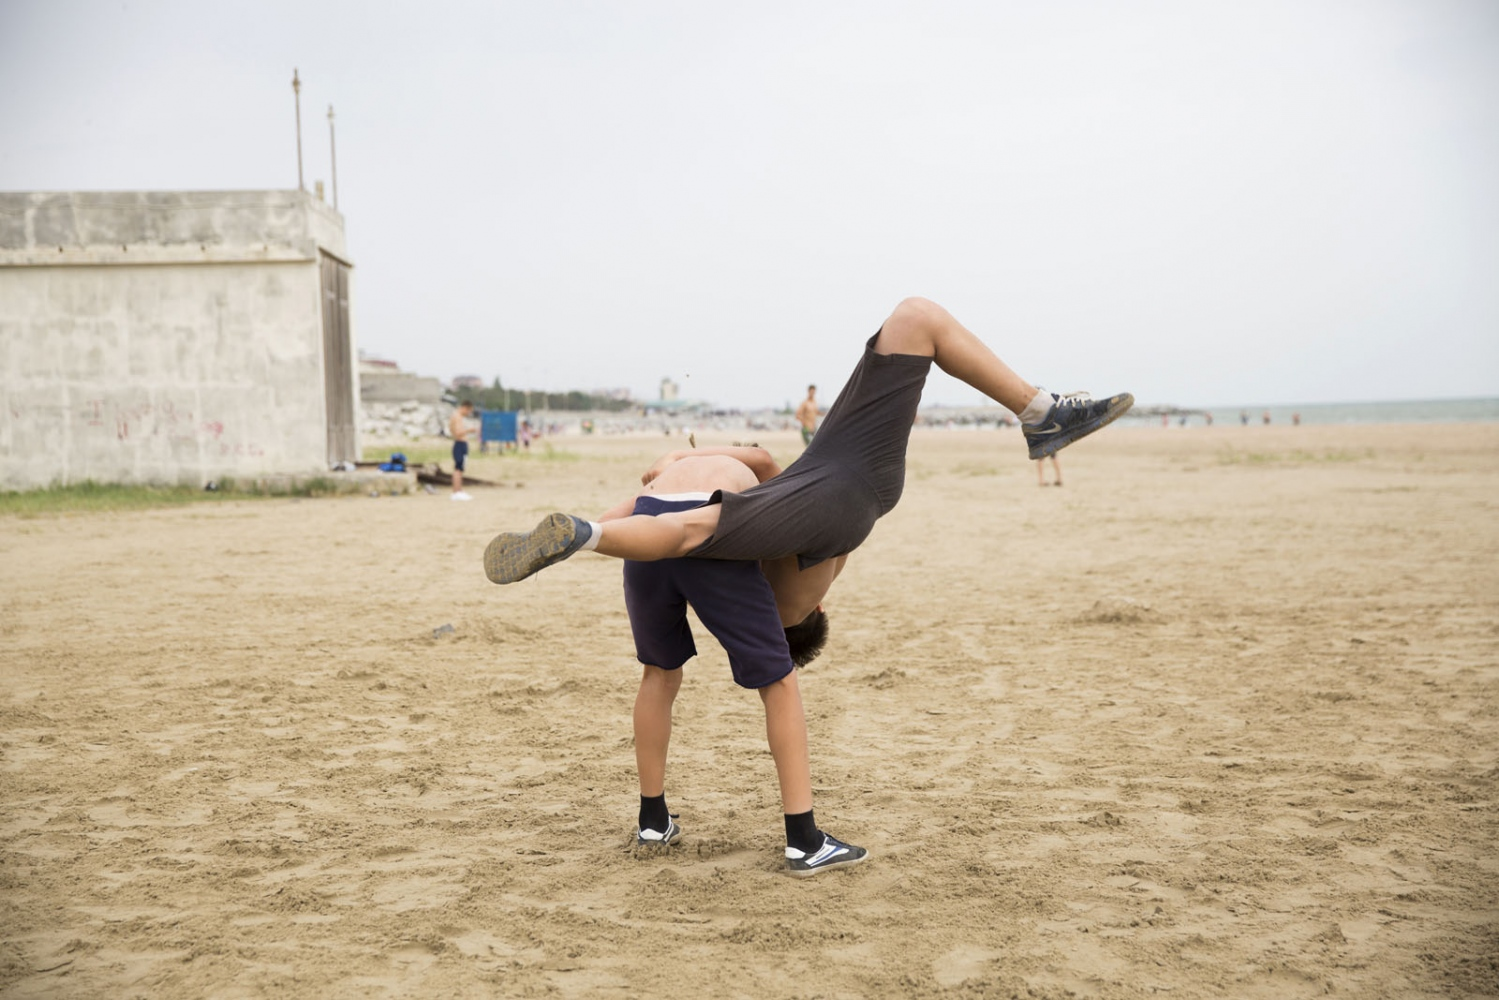 Young buys are taught wrestling on a beach by the Caspian Sea. Fighting is embedded in to the culture of Dagestan and it is renowned around the world for producing large numbers of great fighters from wrestlers to mixed martial arts. The Russian government in Moscow also sends large amounts of funding to help train such fighters.